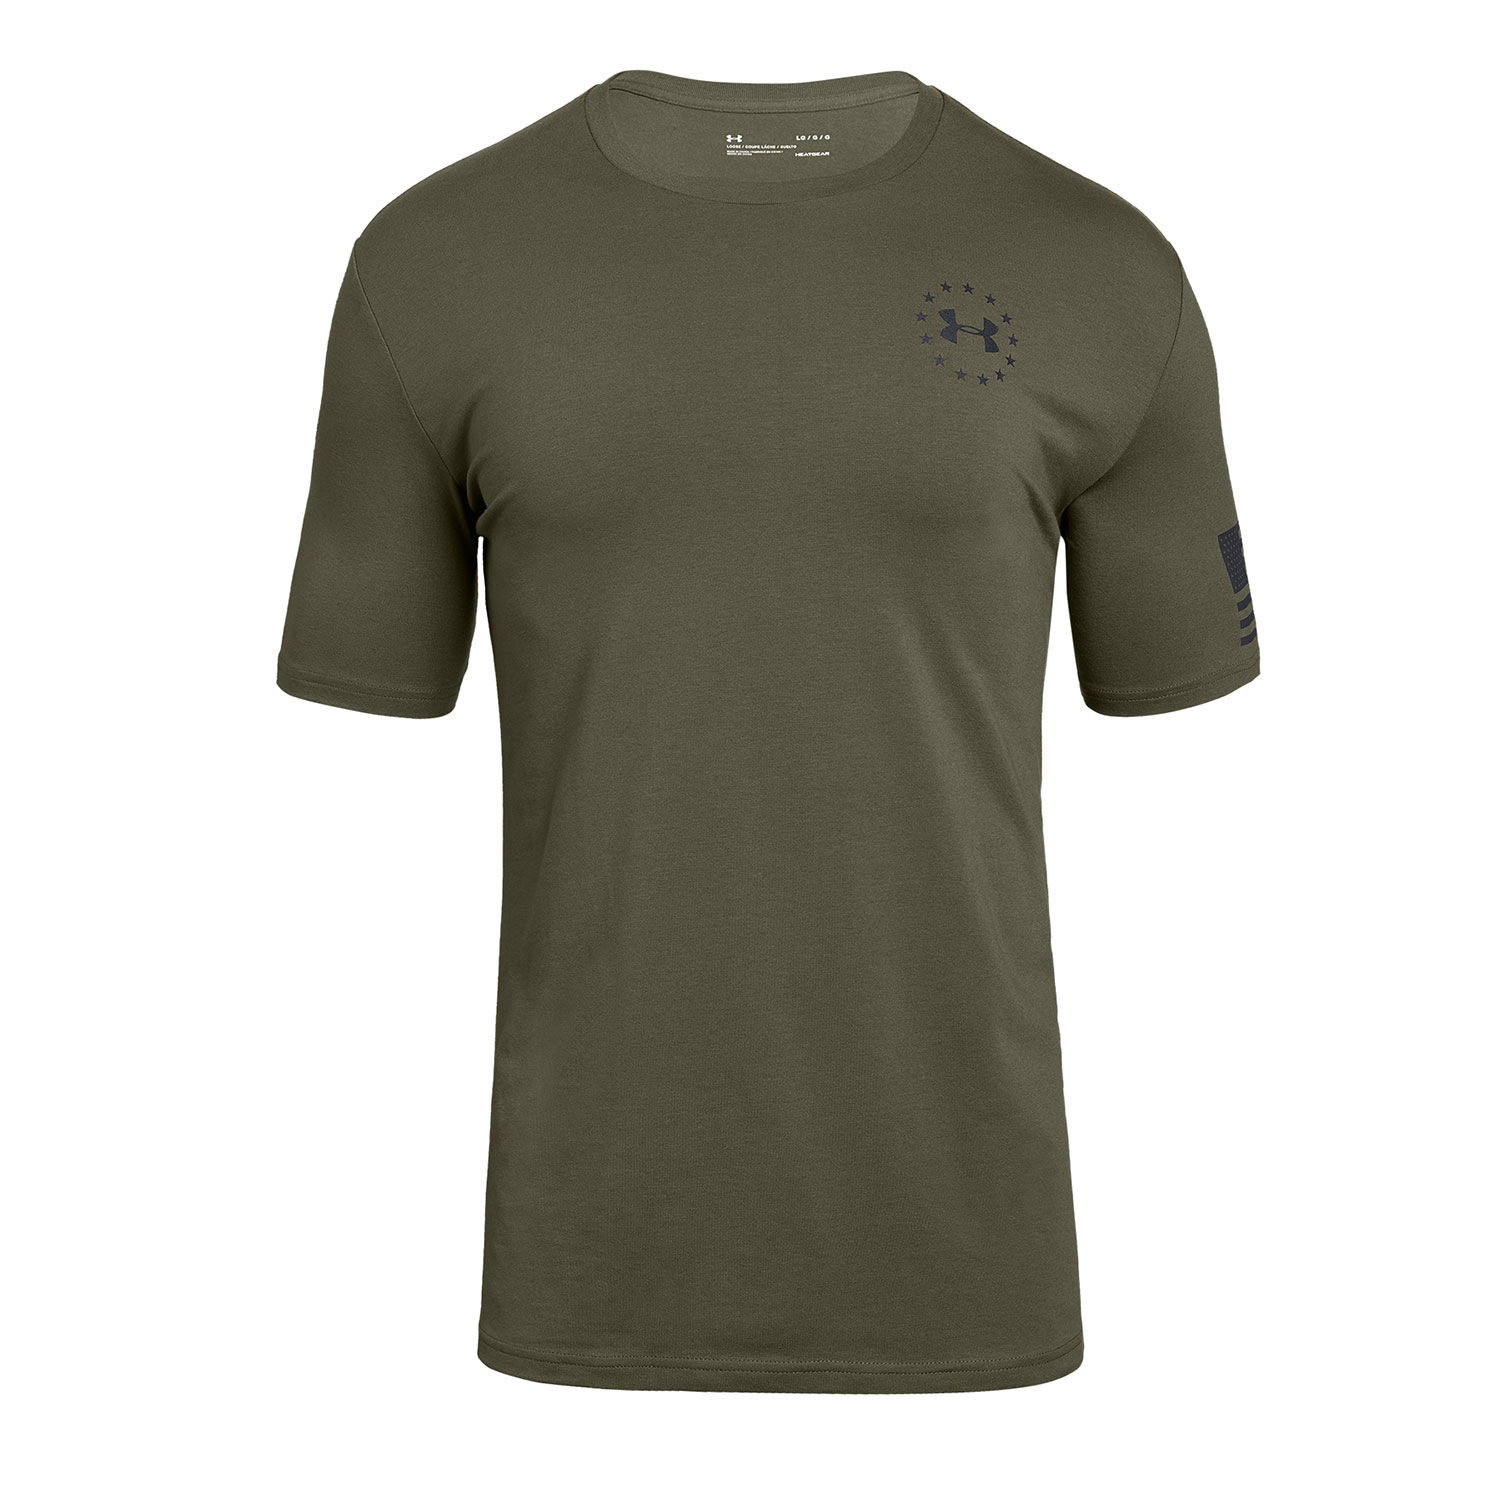 Under Armour Freedom Express Flag Graphic T-Shirt